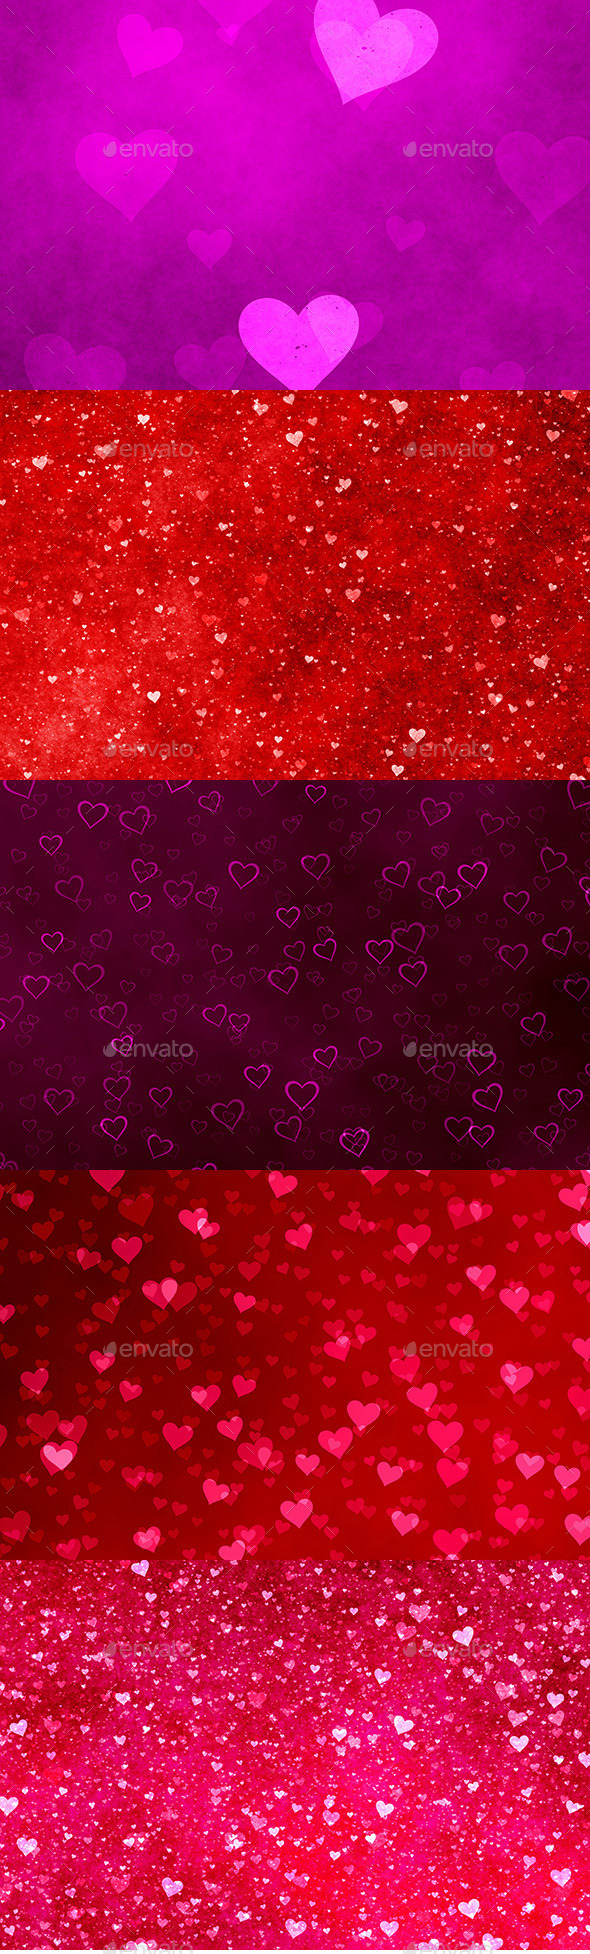 Valentine Backgrounds - Backgrounds Graphics